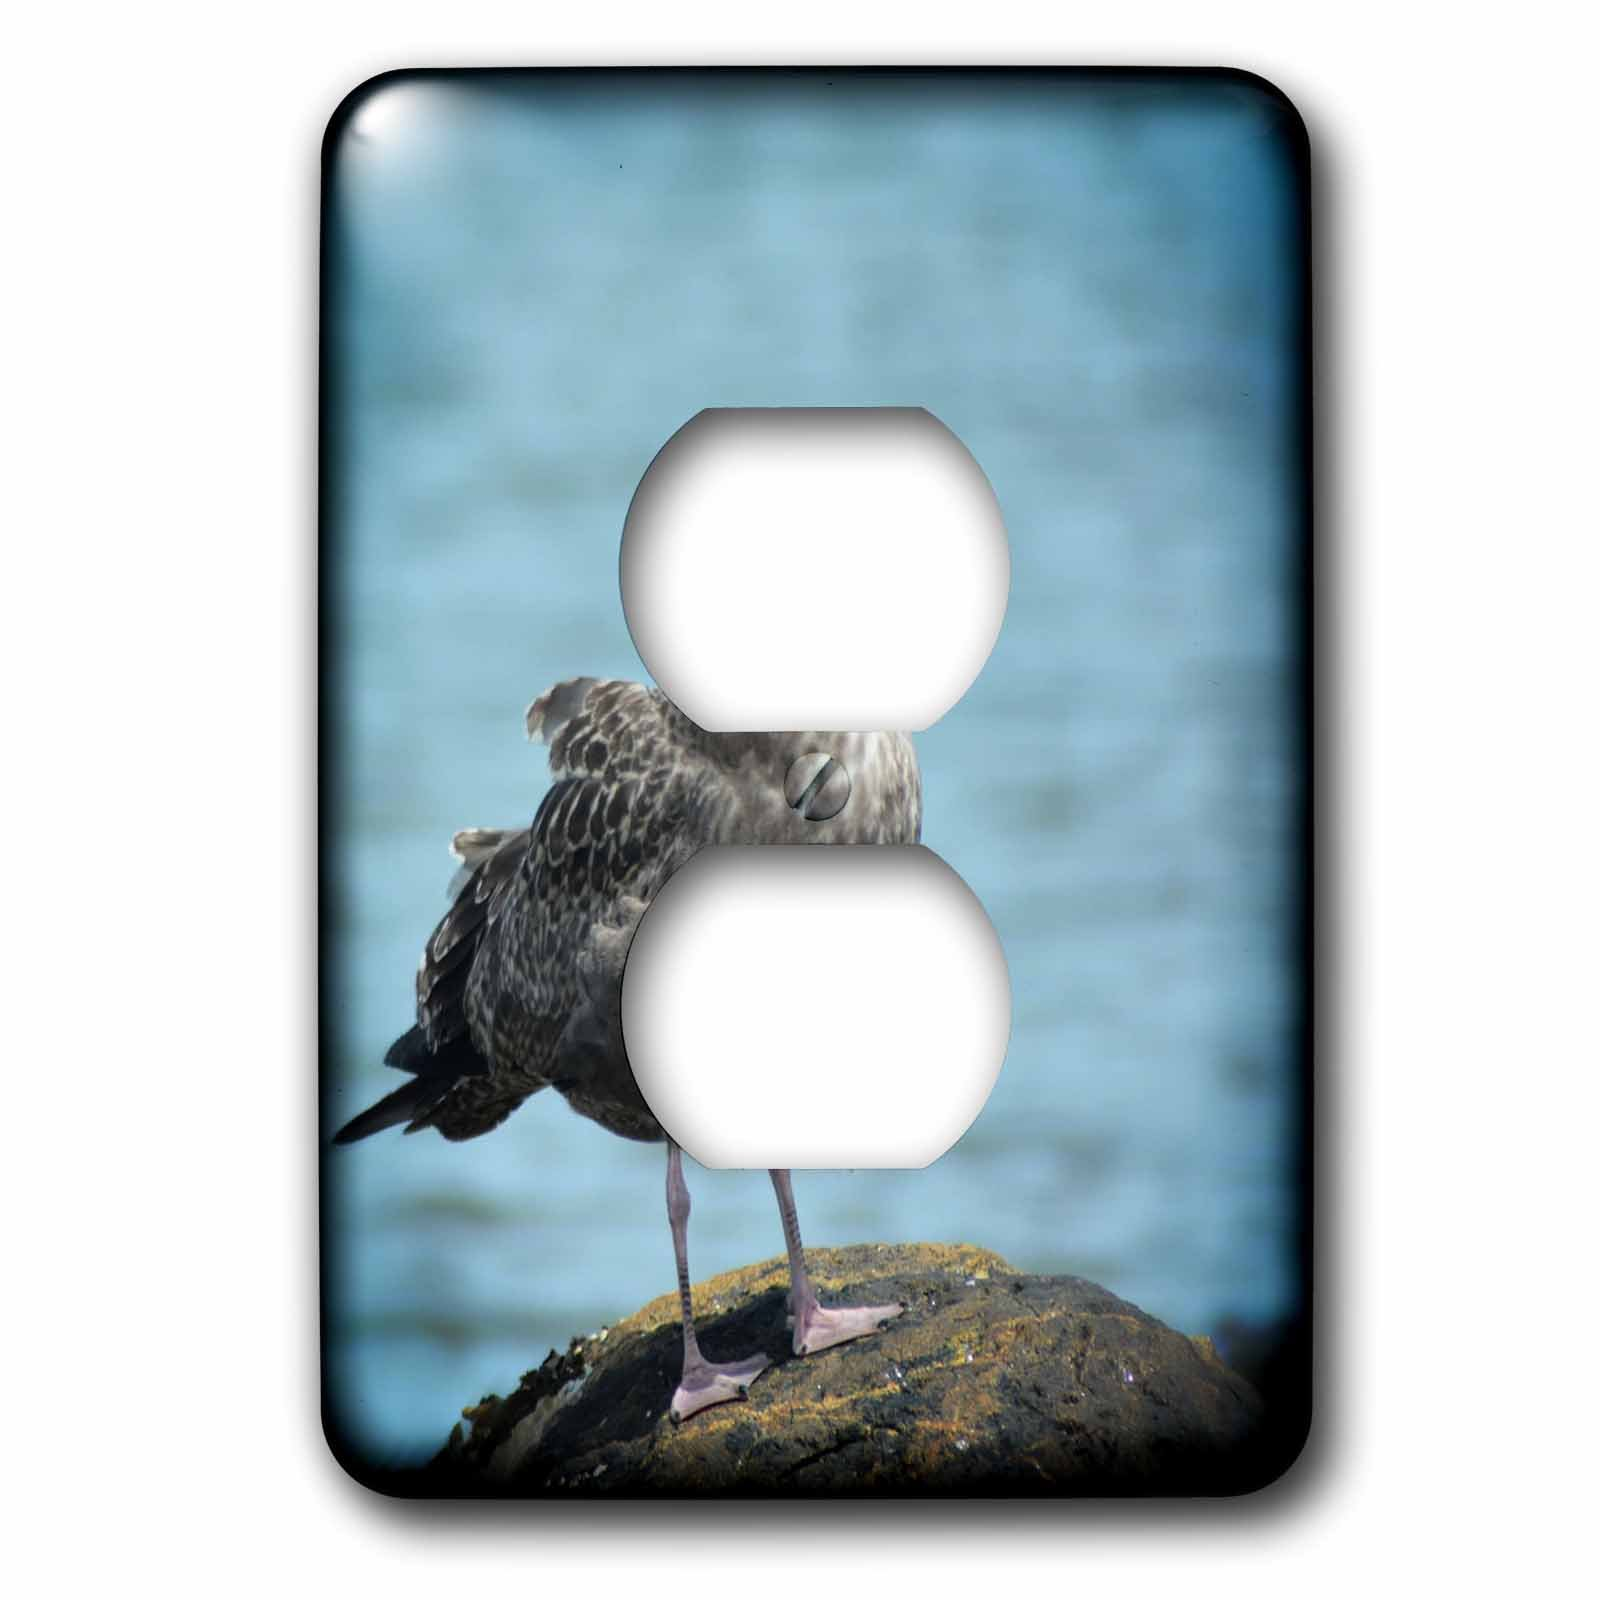 3dRose WhiteOaks Photography and Artwork - Seagulls - Seagull Thinking is a photo I took in Salem Massachusetts - Light Switch Covers - 2 plug outlet cover (lsp_265365_6)